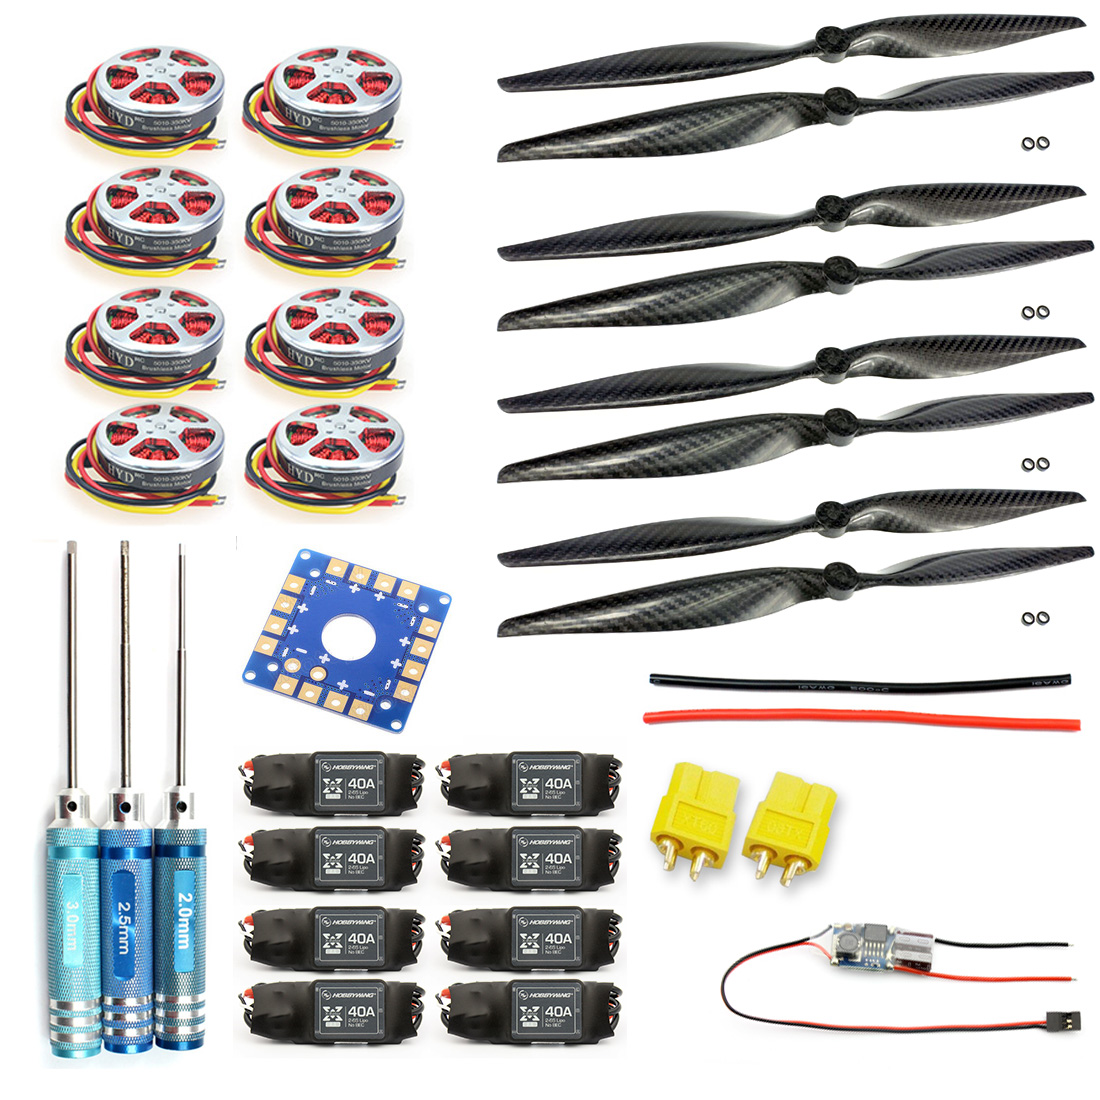 JMT Foldable Rack RC Helicopter Kit KK Connection Board+350KV Brushless Disk Motor+15x4.0 Propeller+40A ESC F05423-E f02015 f 6 axis foldable rack rc quadcopter kit with kk v2 3 circuit board 1000kv brushless motor 10x4 7 propeller 30a esc